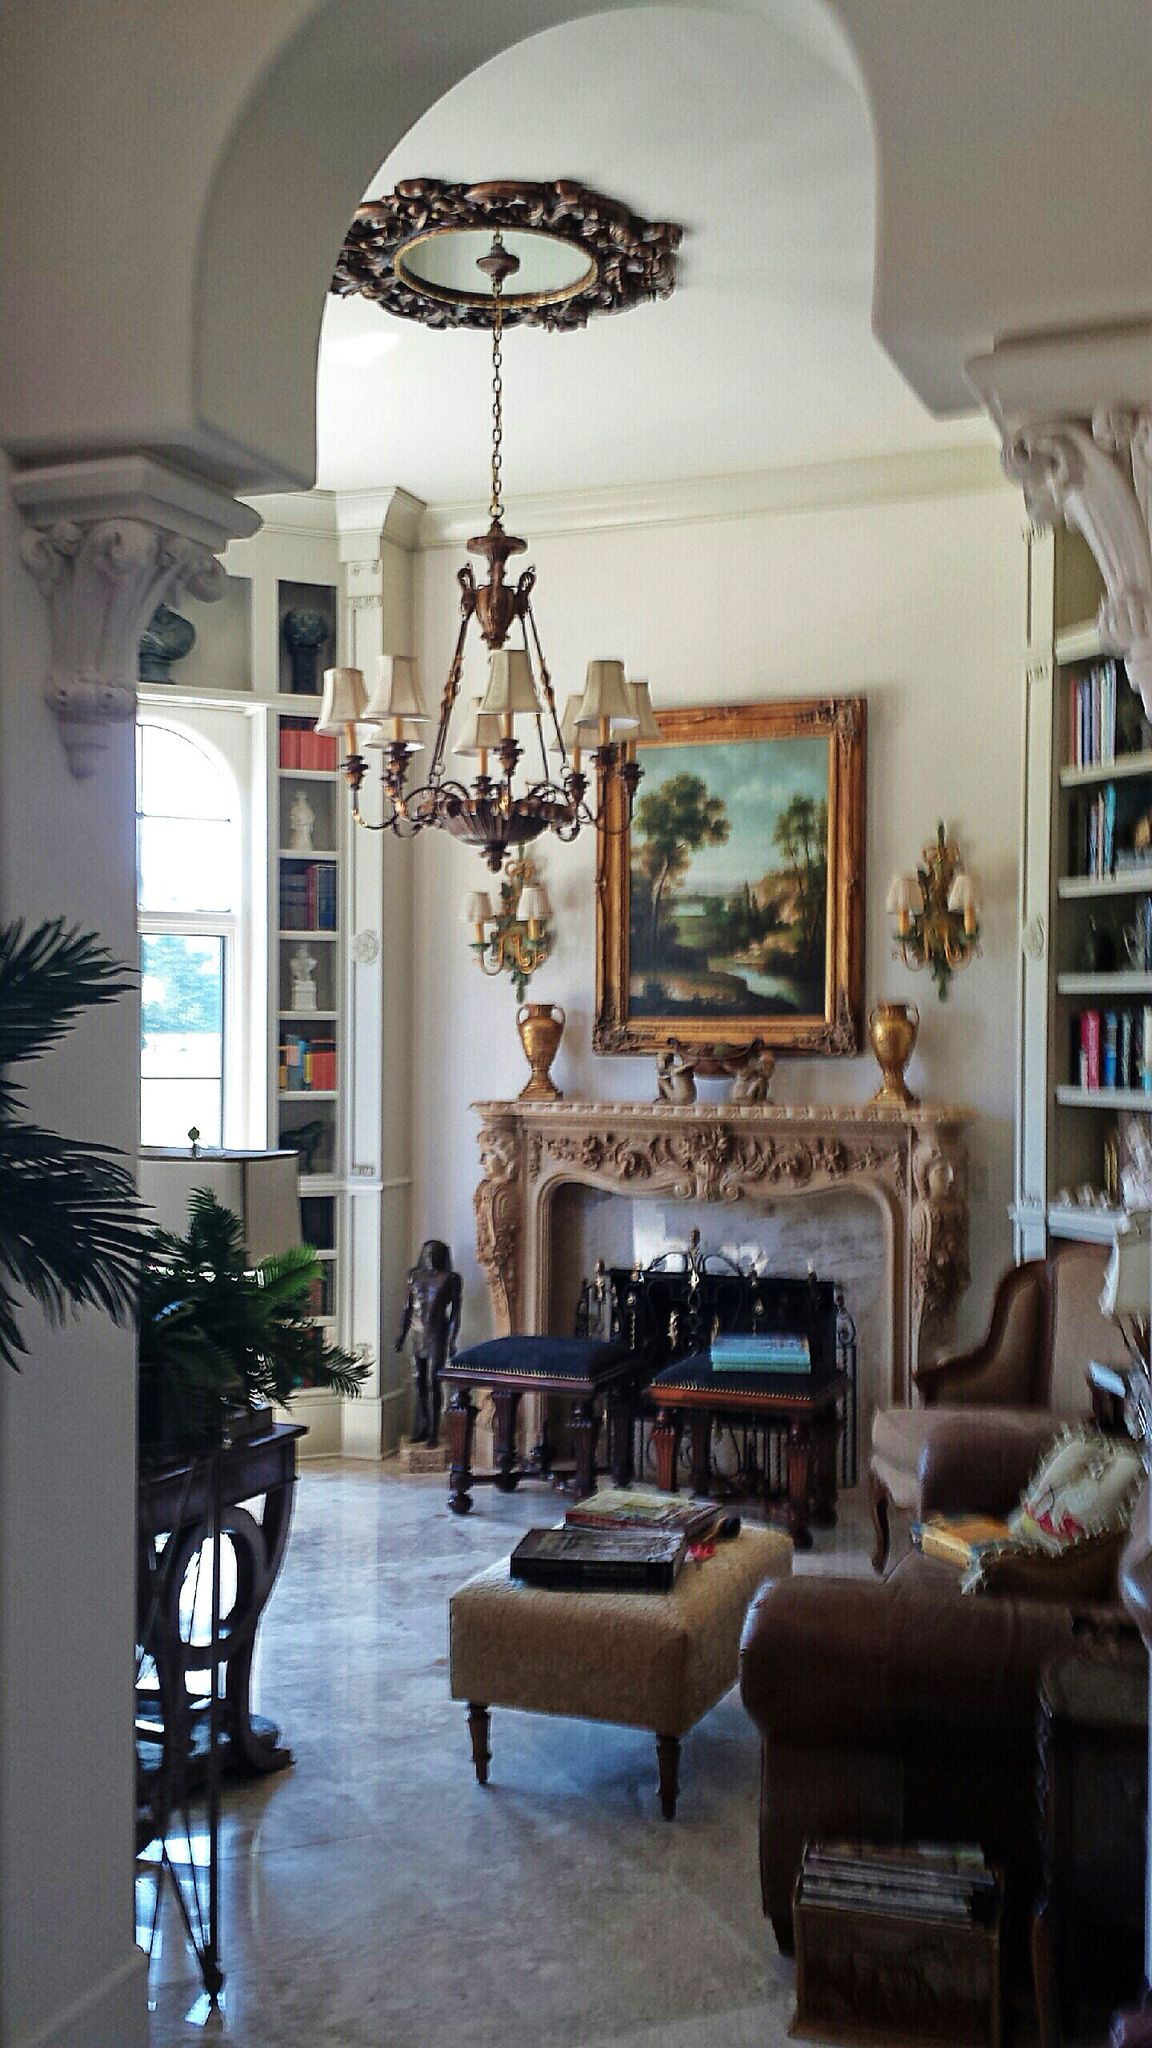 French interiors by Leo Dowell Interiors. | Books | Pinterest ...